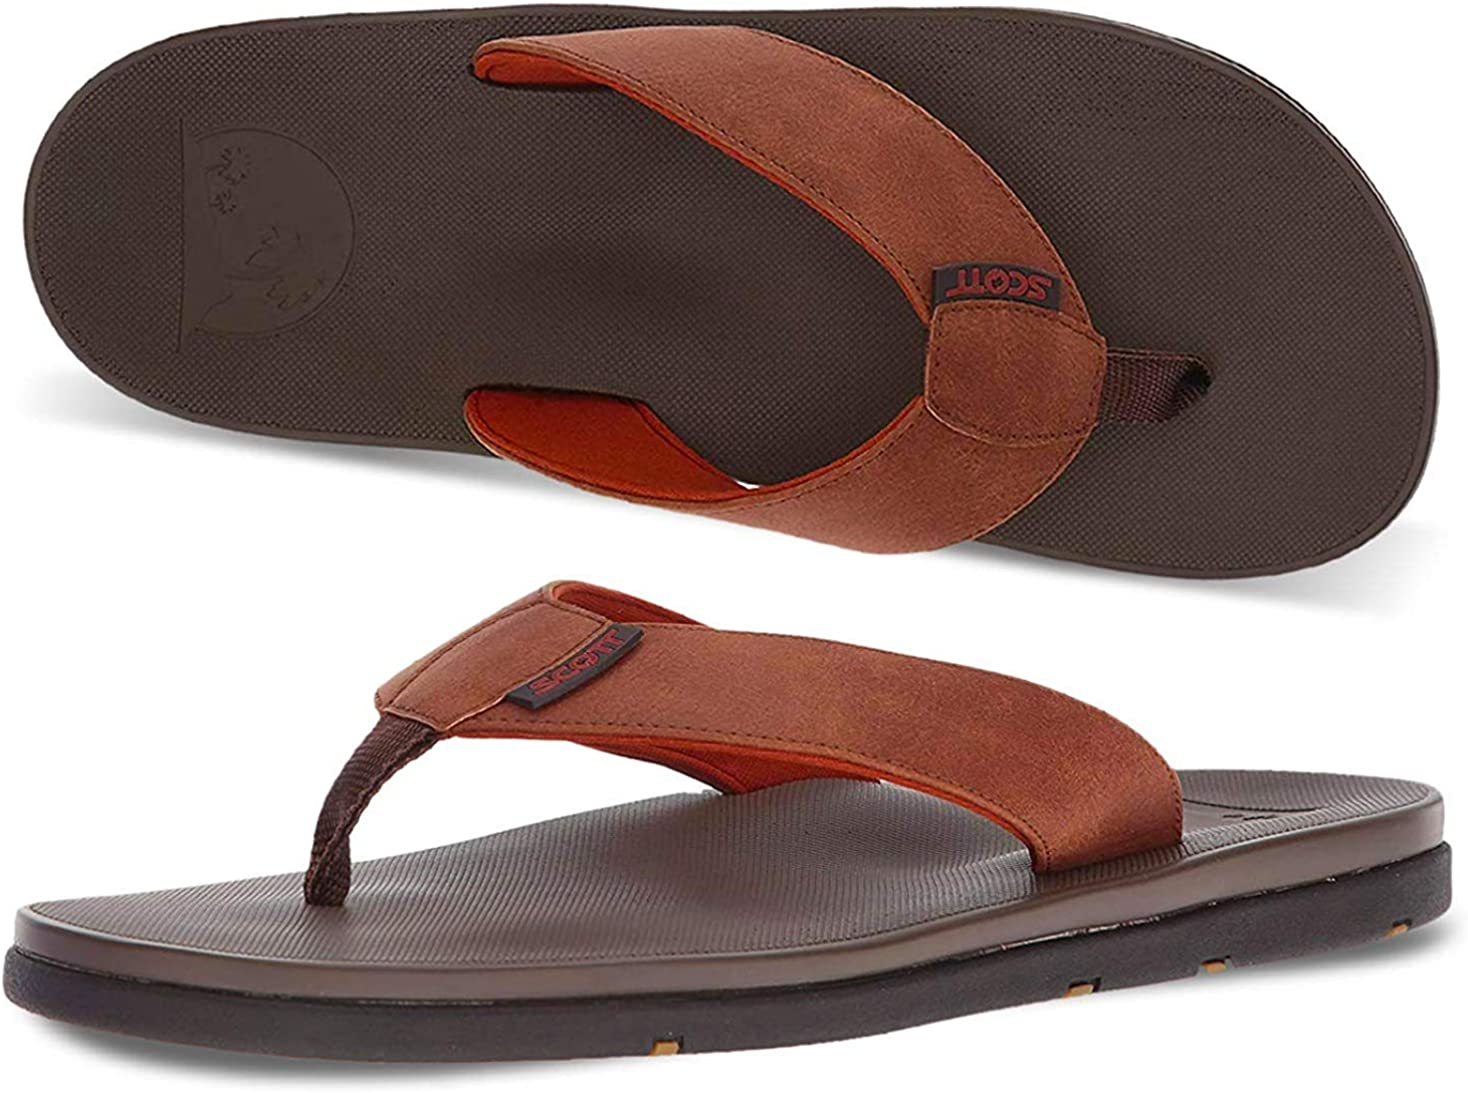 August Jim Mens Flip Flops Rubber Comfortable Summer Outdoor Beach Slippers